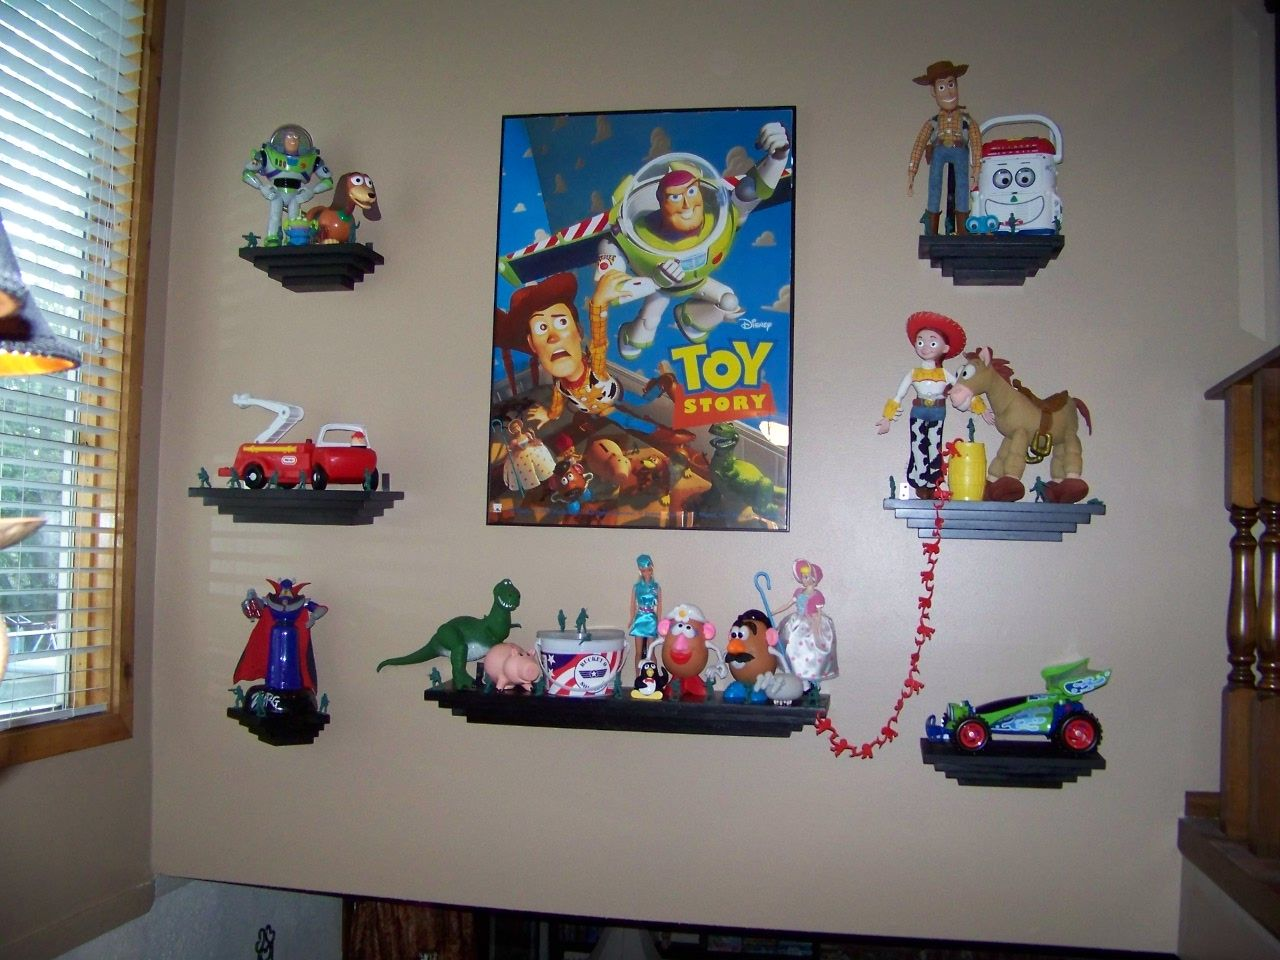 Toy Story Prop Idea Also Need Ideas For Increasing